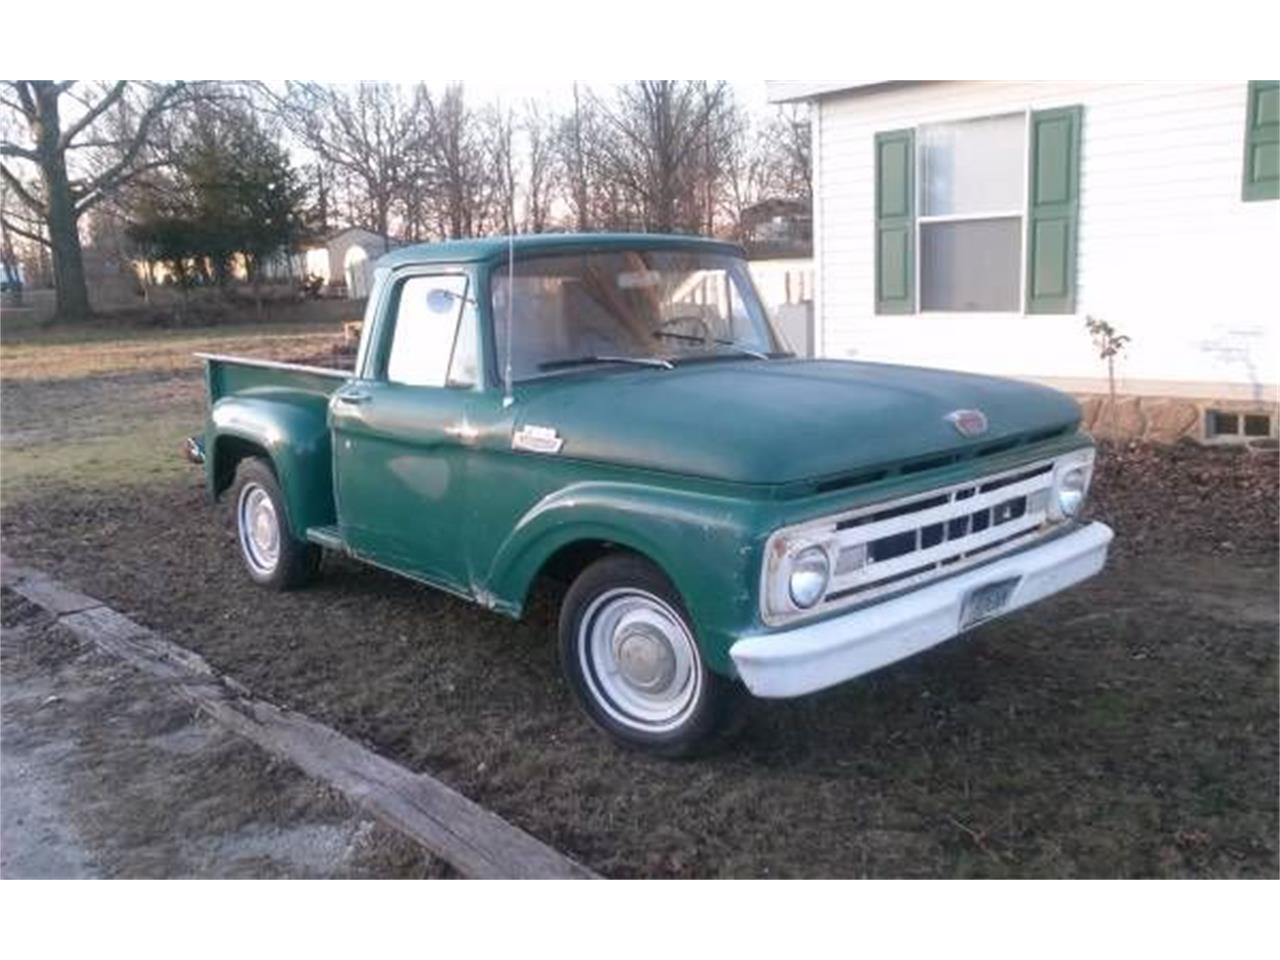 1961 ford f100 61 classic cc cadillac michigan listing engine financing inspection insurance transport classiccars